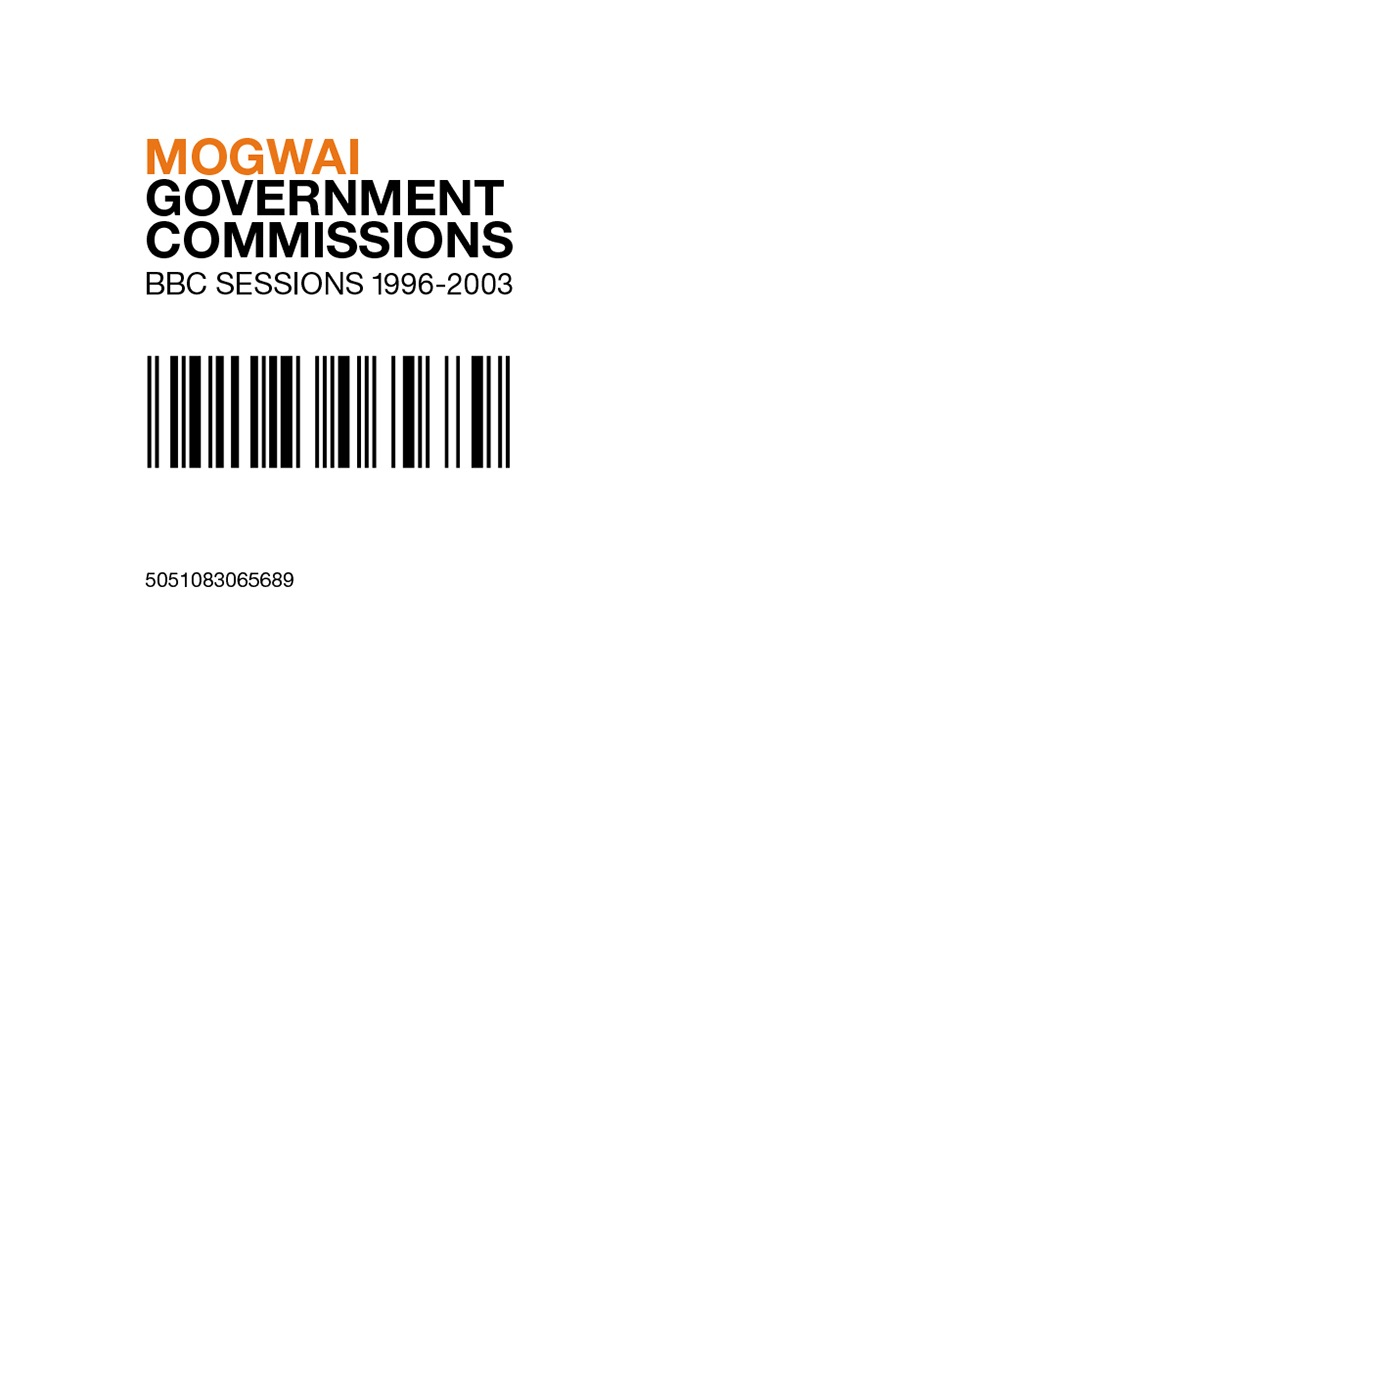 Government Commissions (BBC Sessions 1996-2003)